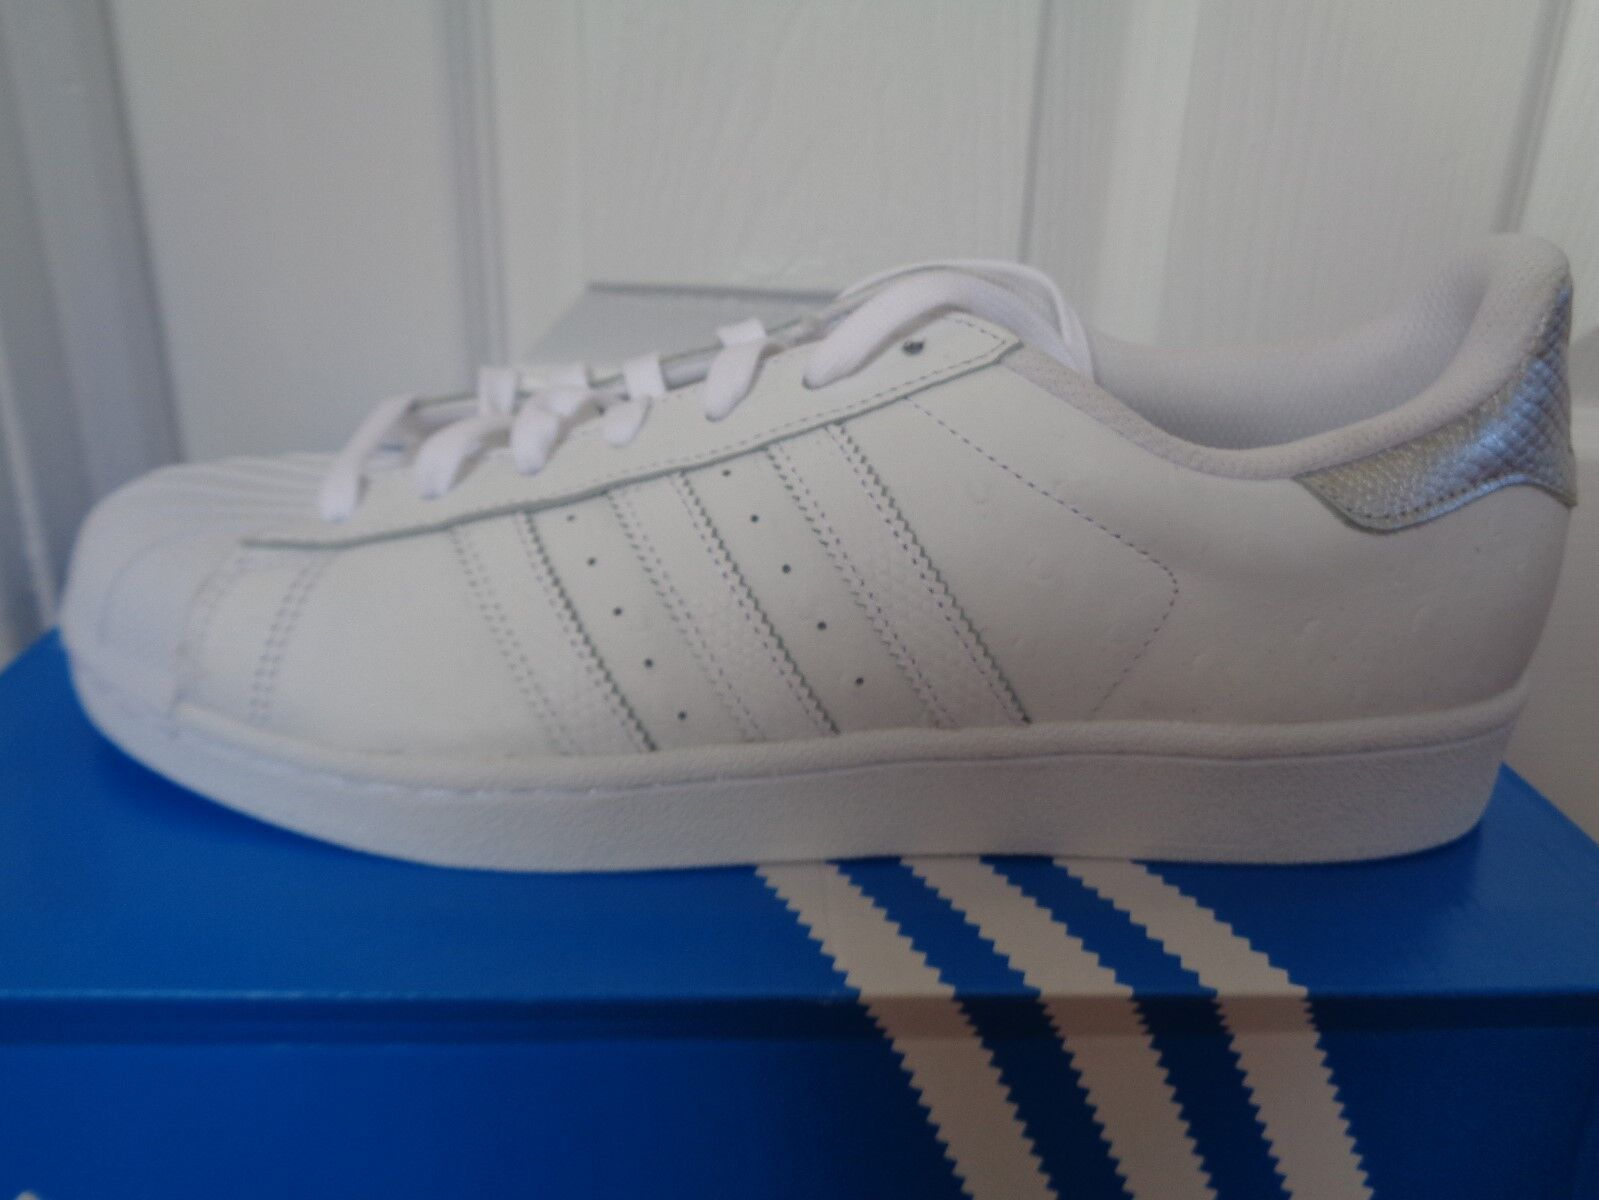 Adidas Turnschuhe Originals Superstar mens trainers Turnschuhe Adidas schuhe S80341 NEW+BOX 4d52eb